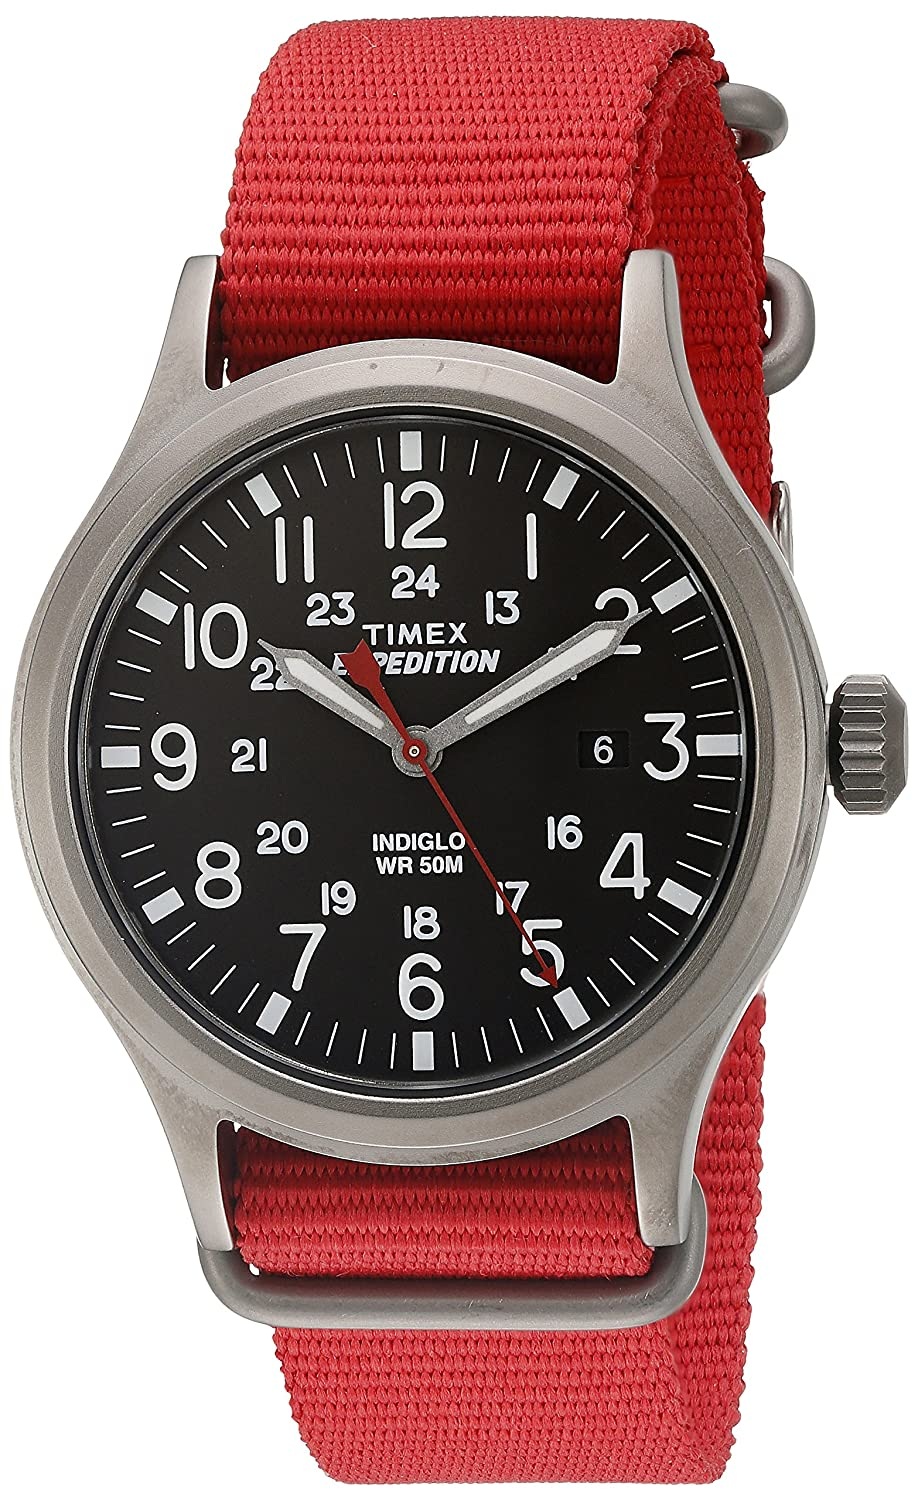 Timex メンズ Expedition Scout 40 腕時計 Mens Standard レッド B0194LW1DO レッド レッド